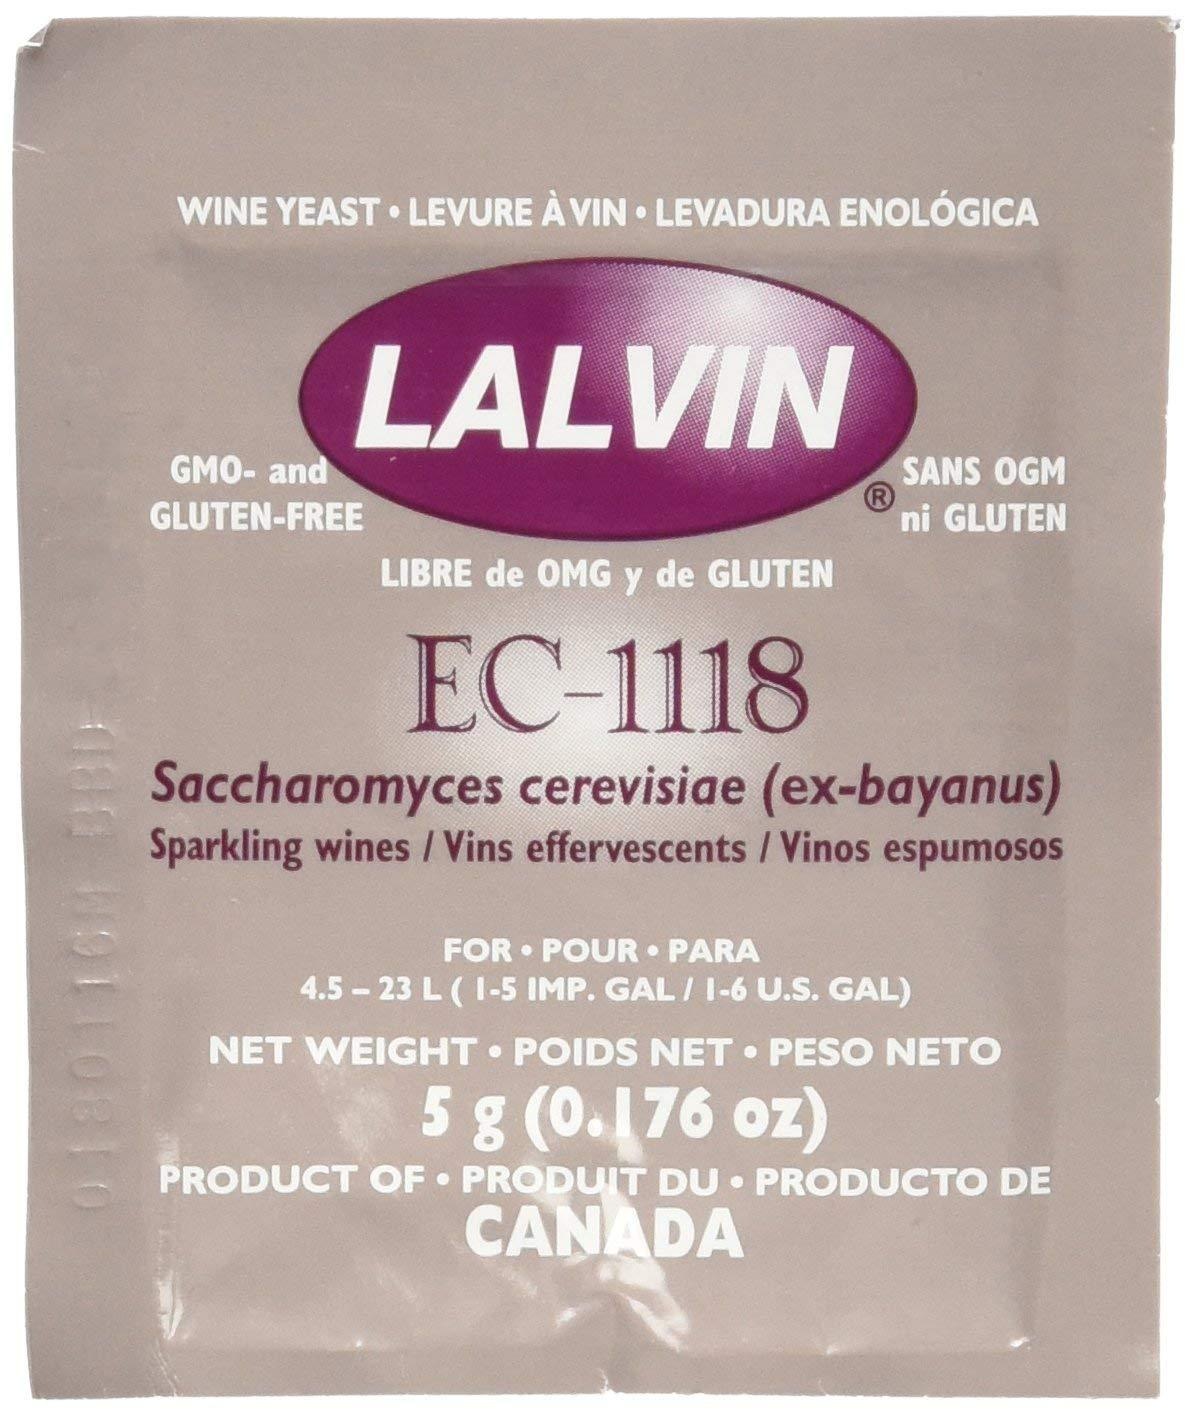 Lalvin Dried Wine Yeast Ec 1118 (pack Of 10) By Elite Collection.